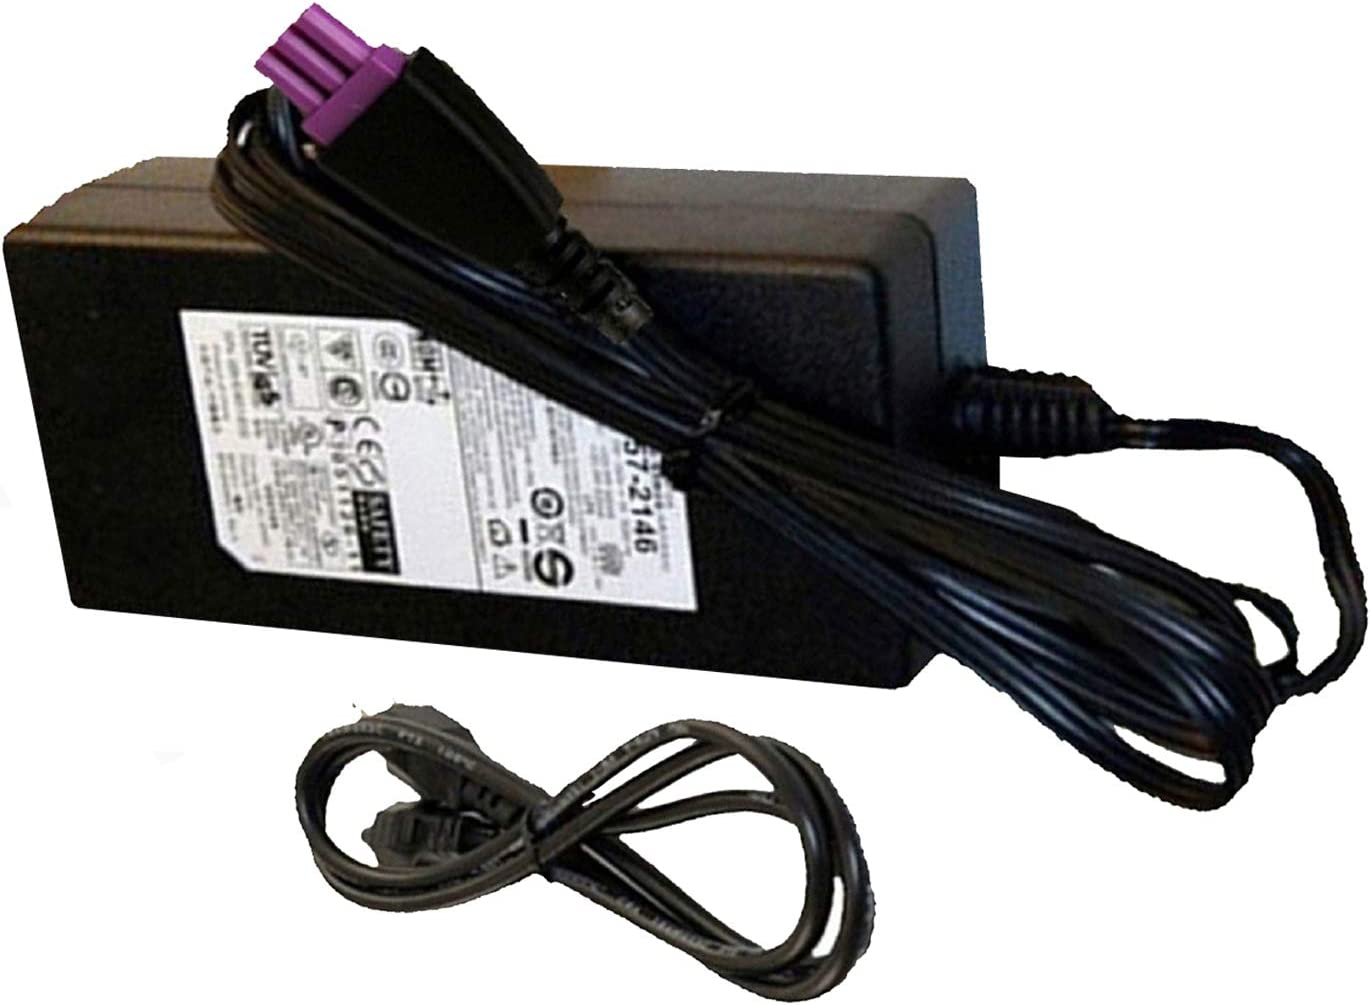 NEW HP Genuine OEM AC Power Supply Adapter 32V 625mA 0957-2242 0957-2269 for HP Deskjet F4210 F4230 F4235 F4240 F4250 F4272 F4273 F4274 F4275 F4280 F4283 F4288 F4292 F4293 OfficeJet J4524 J4580 J4624 J4660 J4680